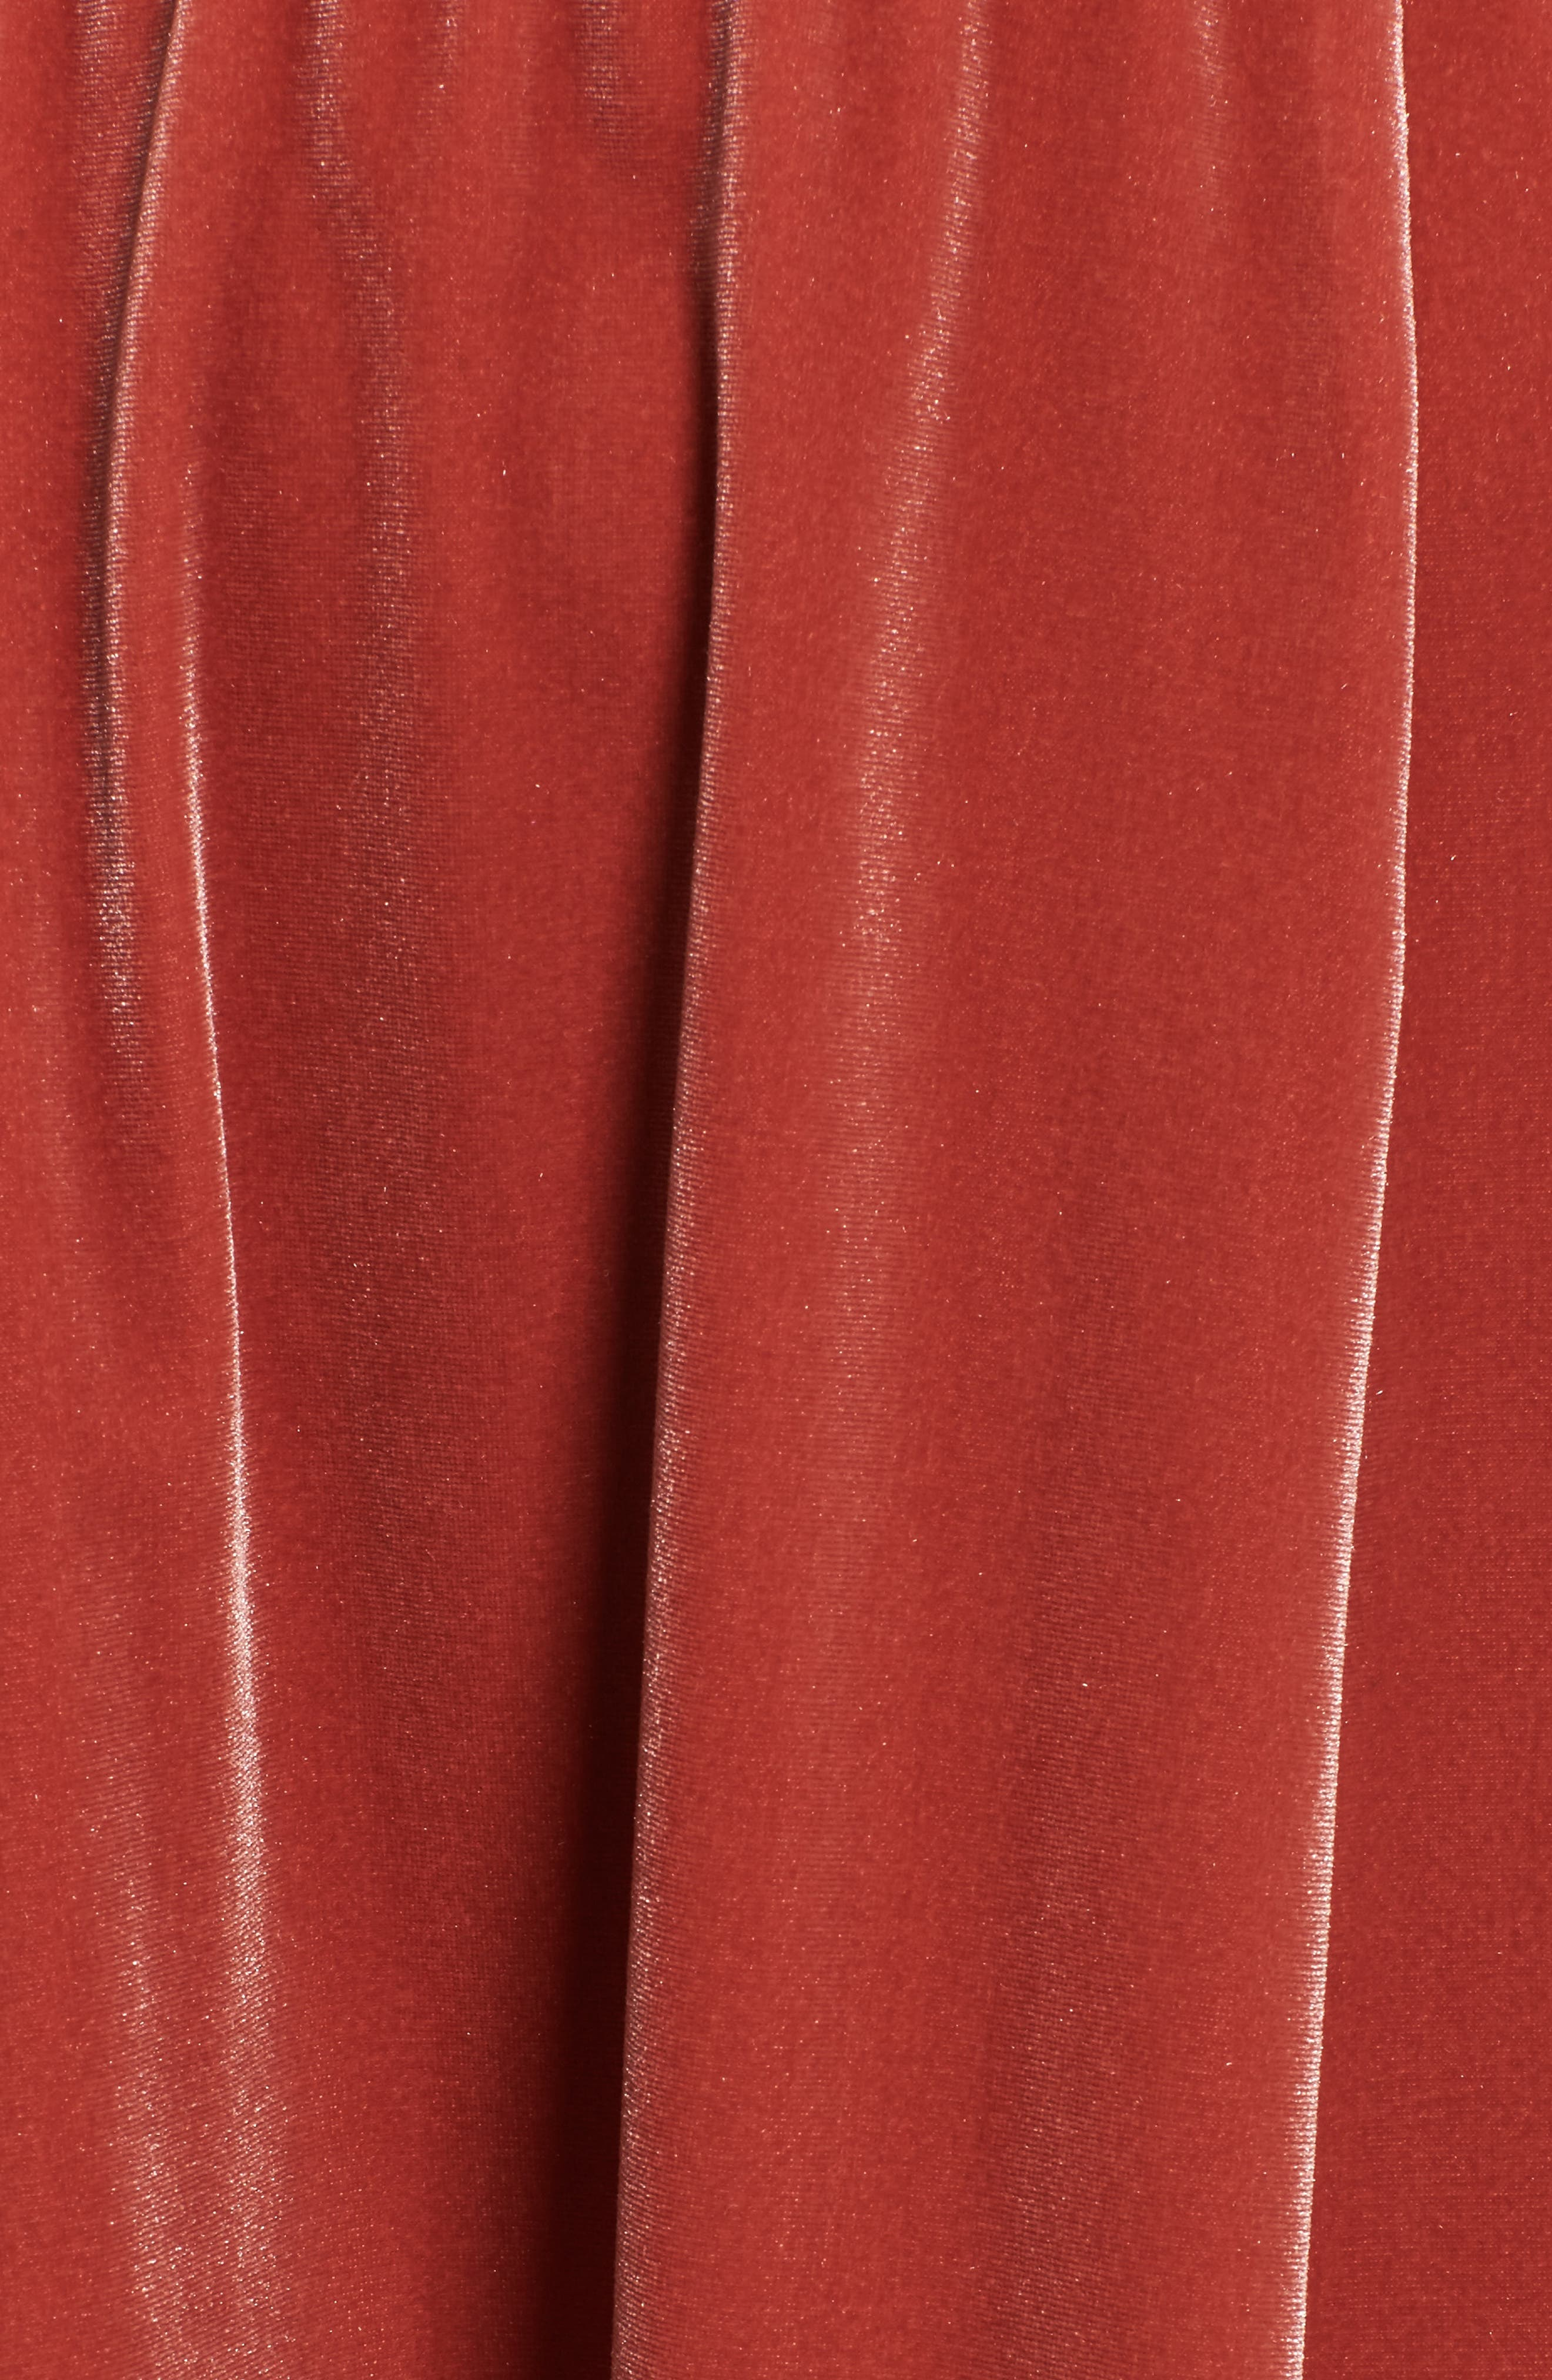 Velvet Midi Dress,                             Alternate thumbnail 5, color,                             800